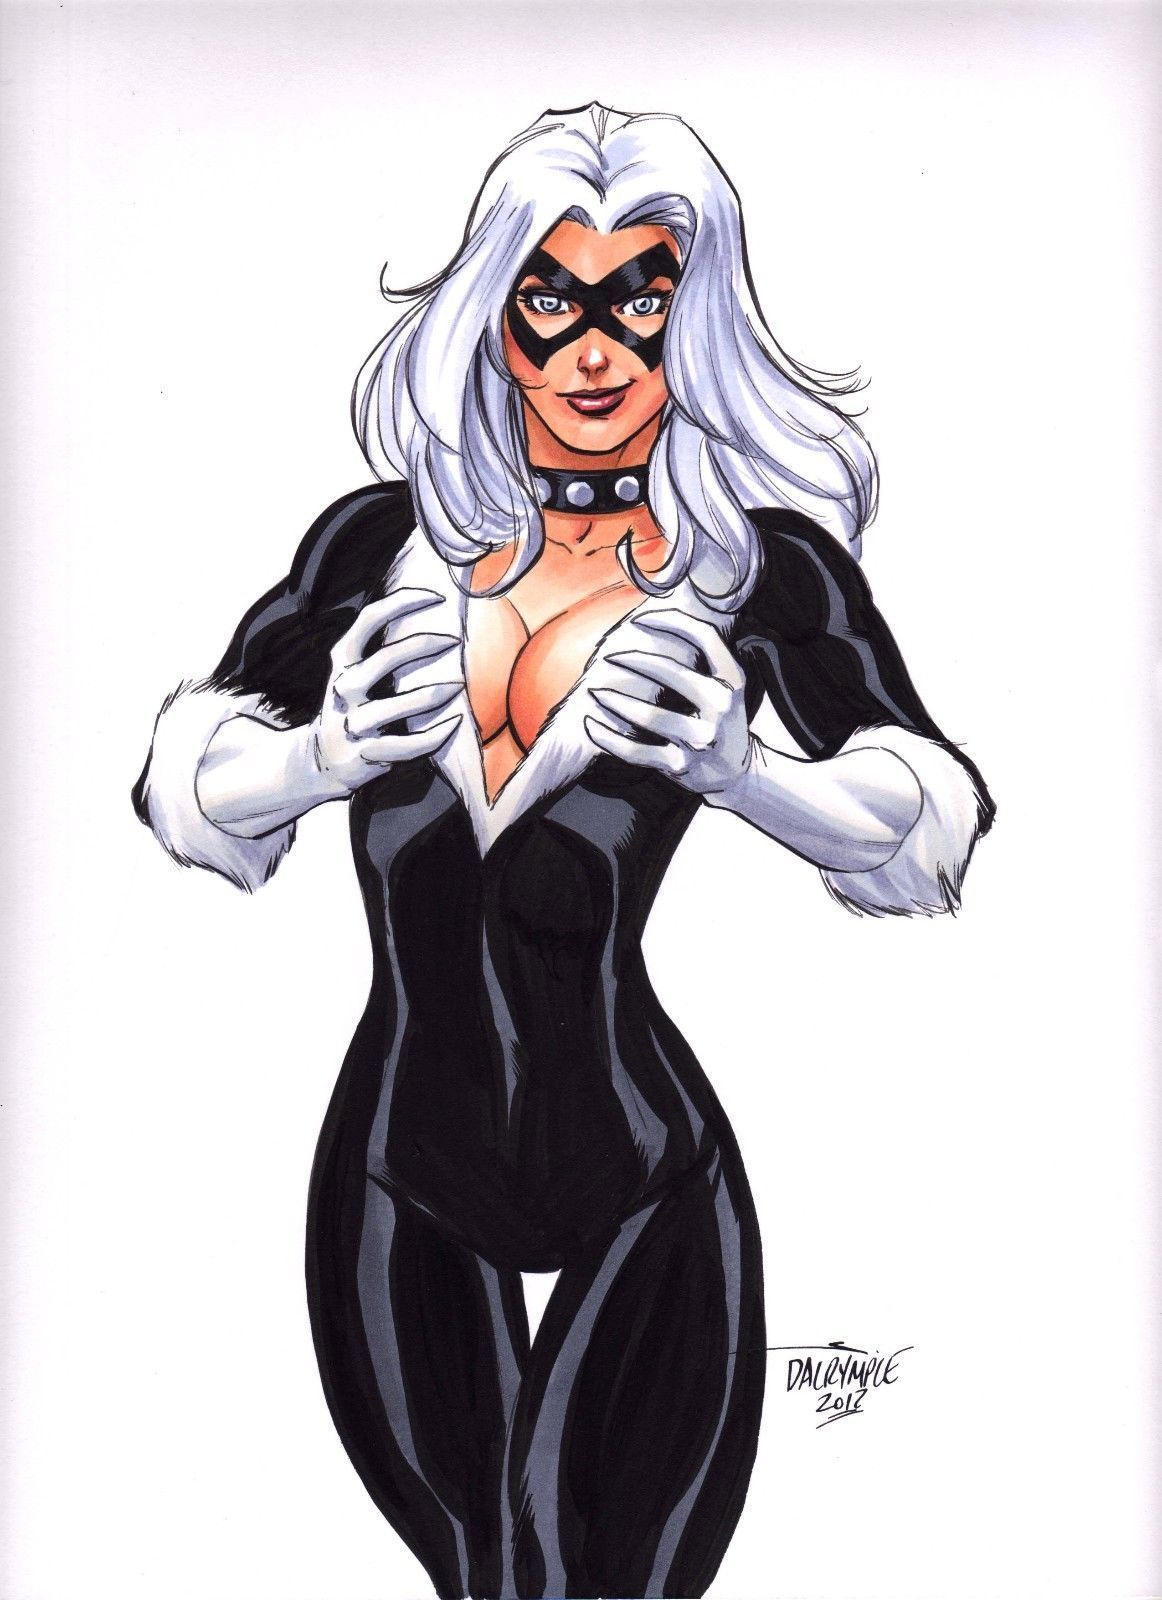 Pin By Quoc Huynh On Comic Black Cat Marvel Spiderman Black Cat